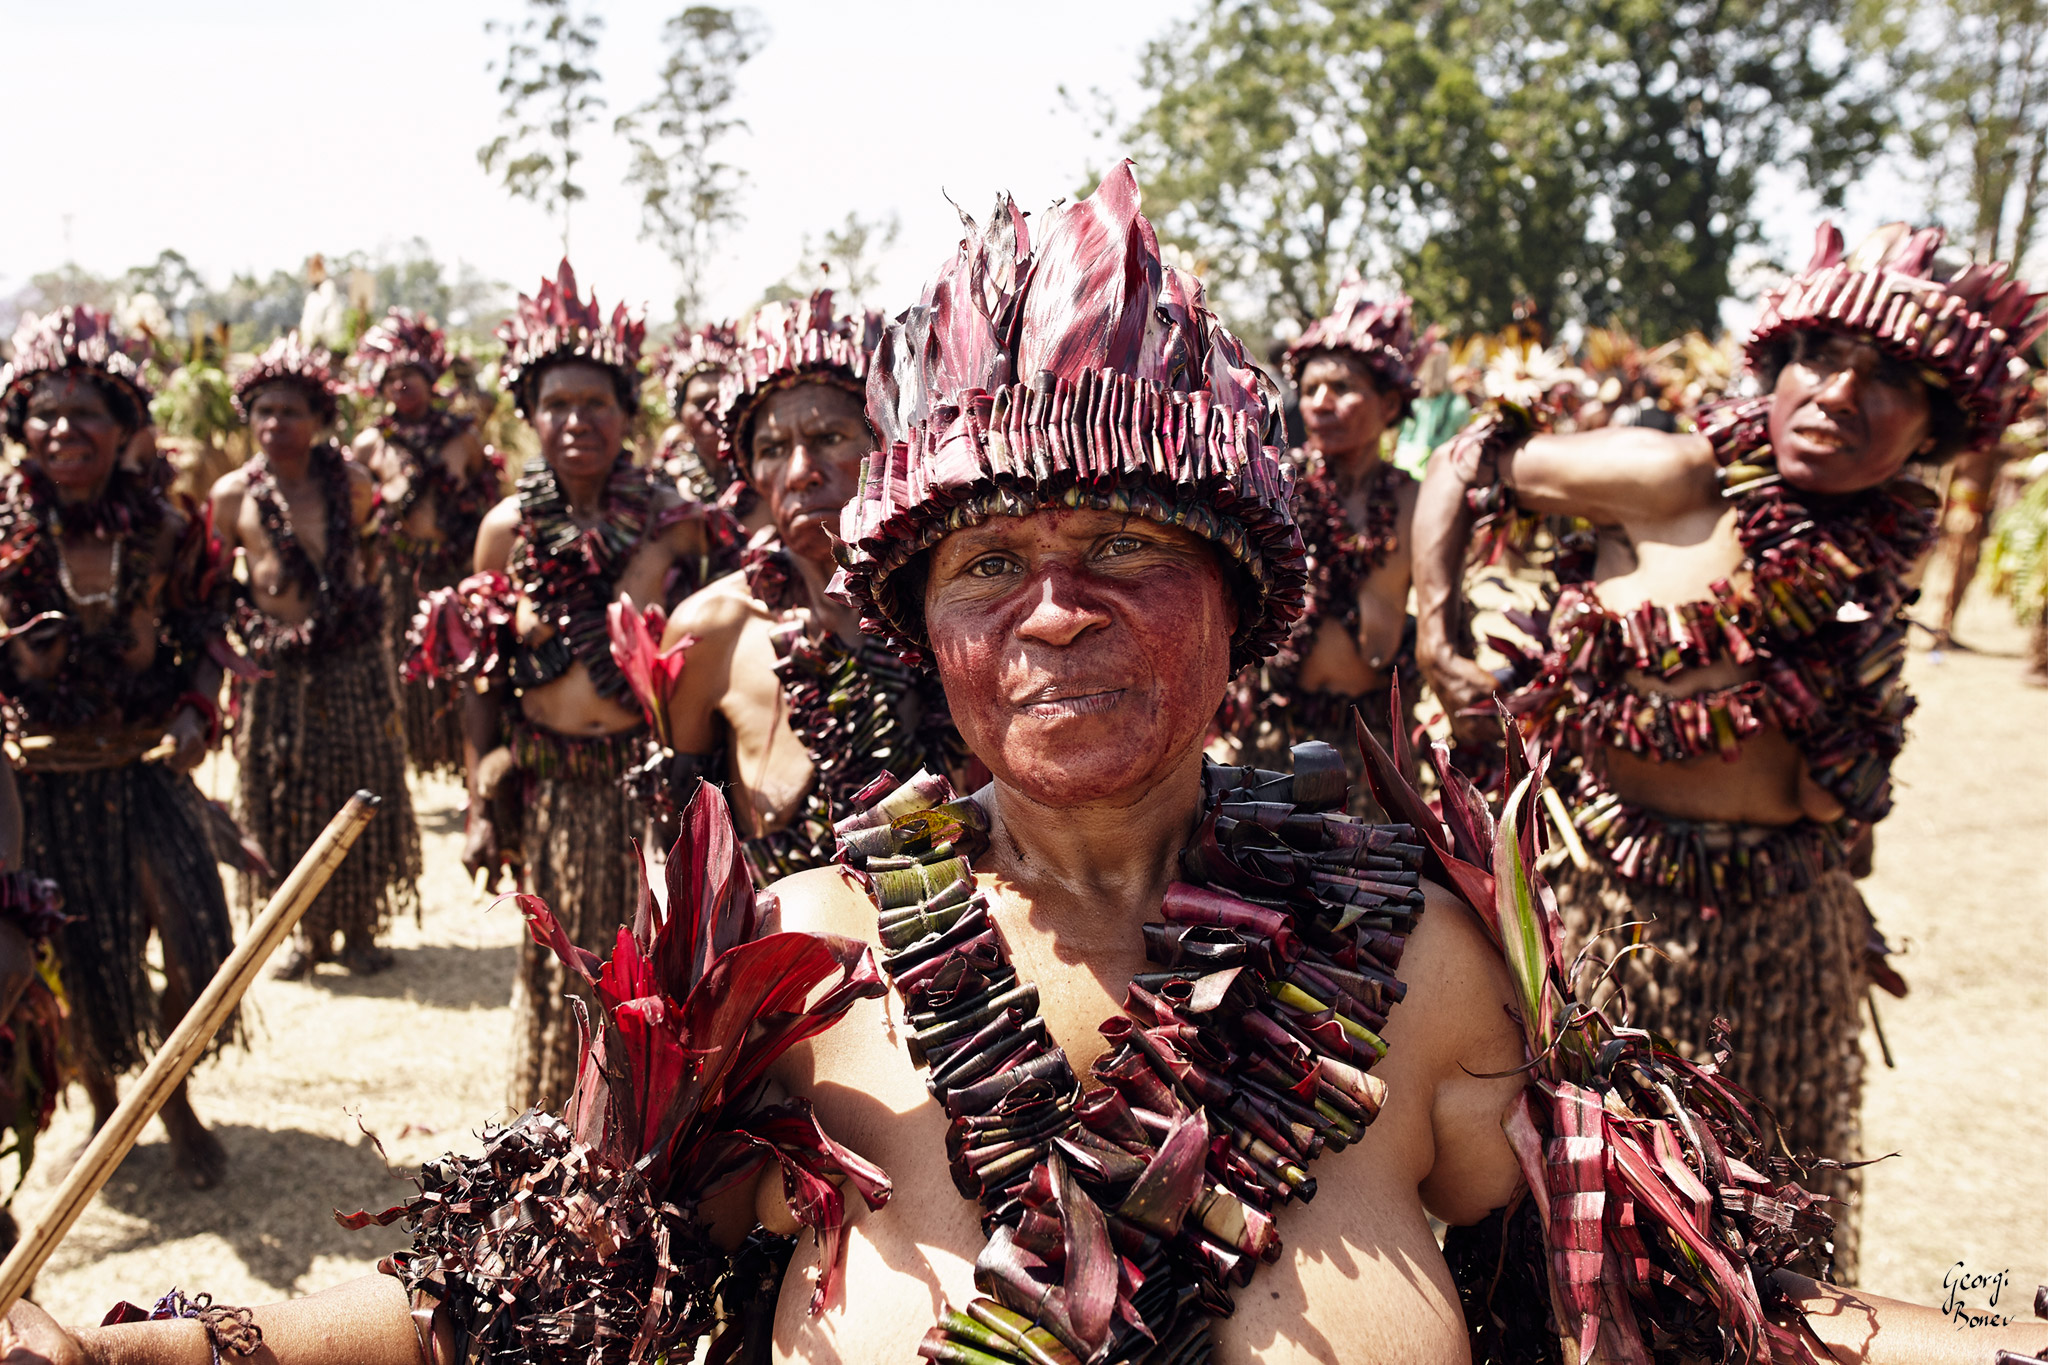 ELIMBARI WOMAN IN PAPUA NEW GUINEA